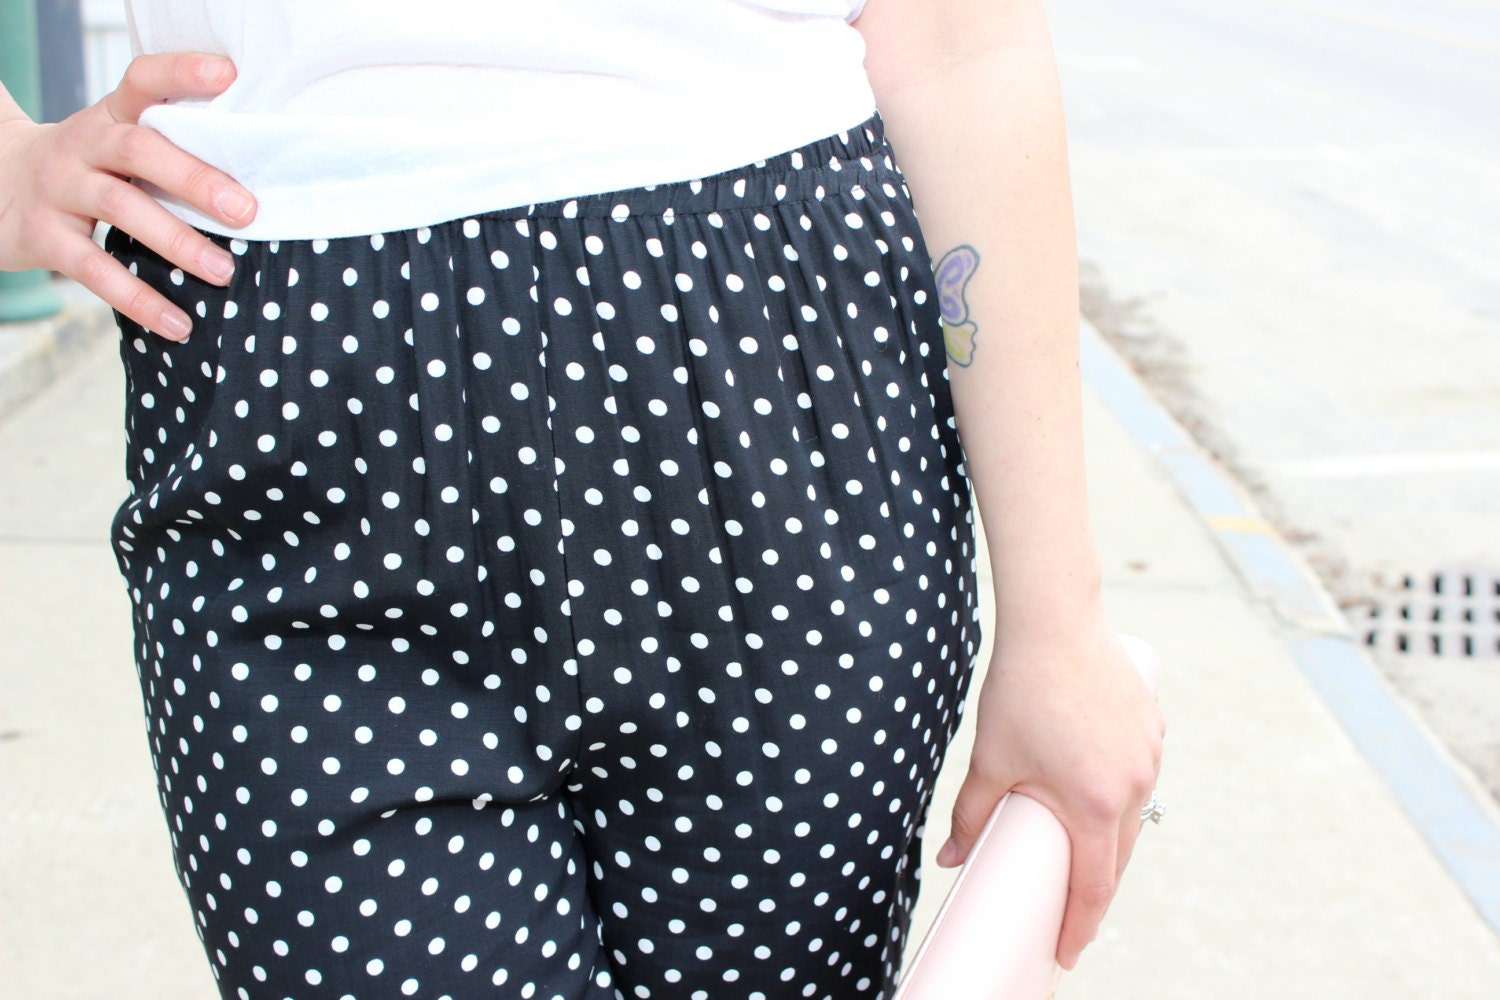 Shop for polka dots pants online at Target. Free shipping on purchases over $35 and save 5% every day with your Target REDcard.